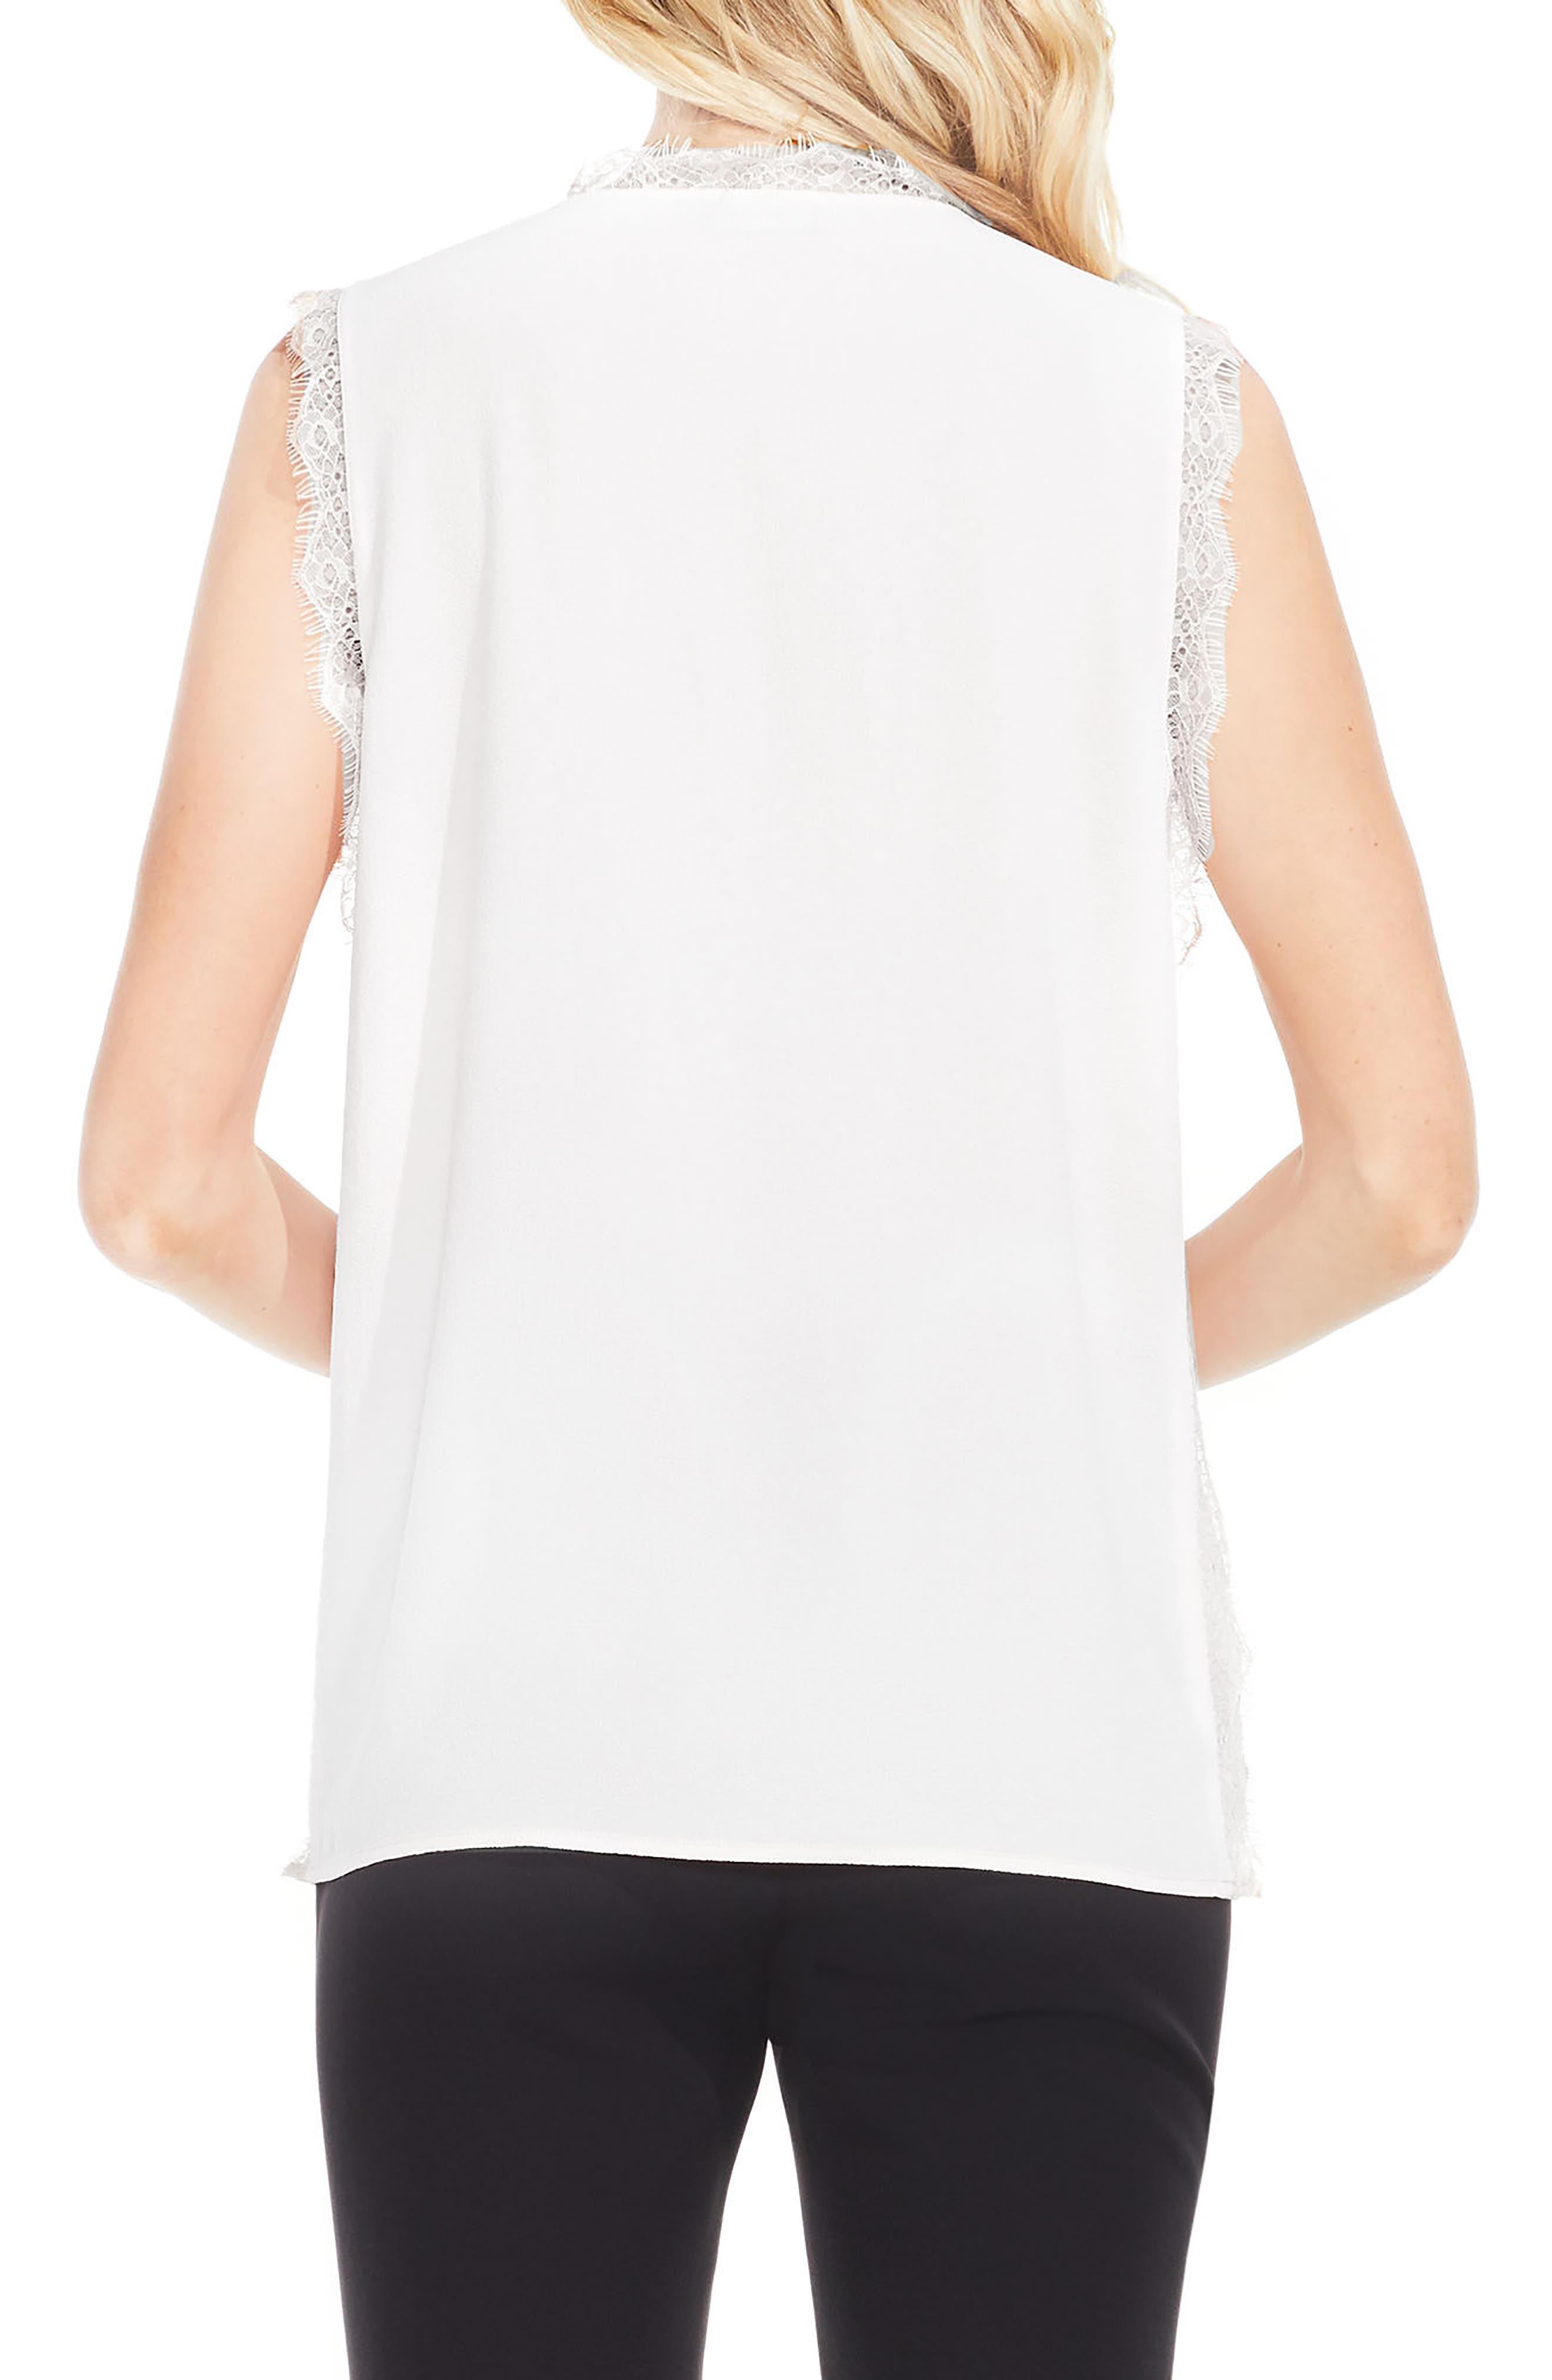 Alternate Image 2  - Vince Camuto Lace Trim Sleeveless Blouse